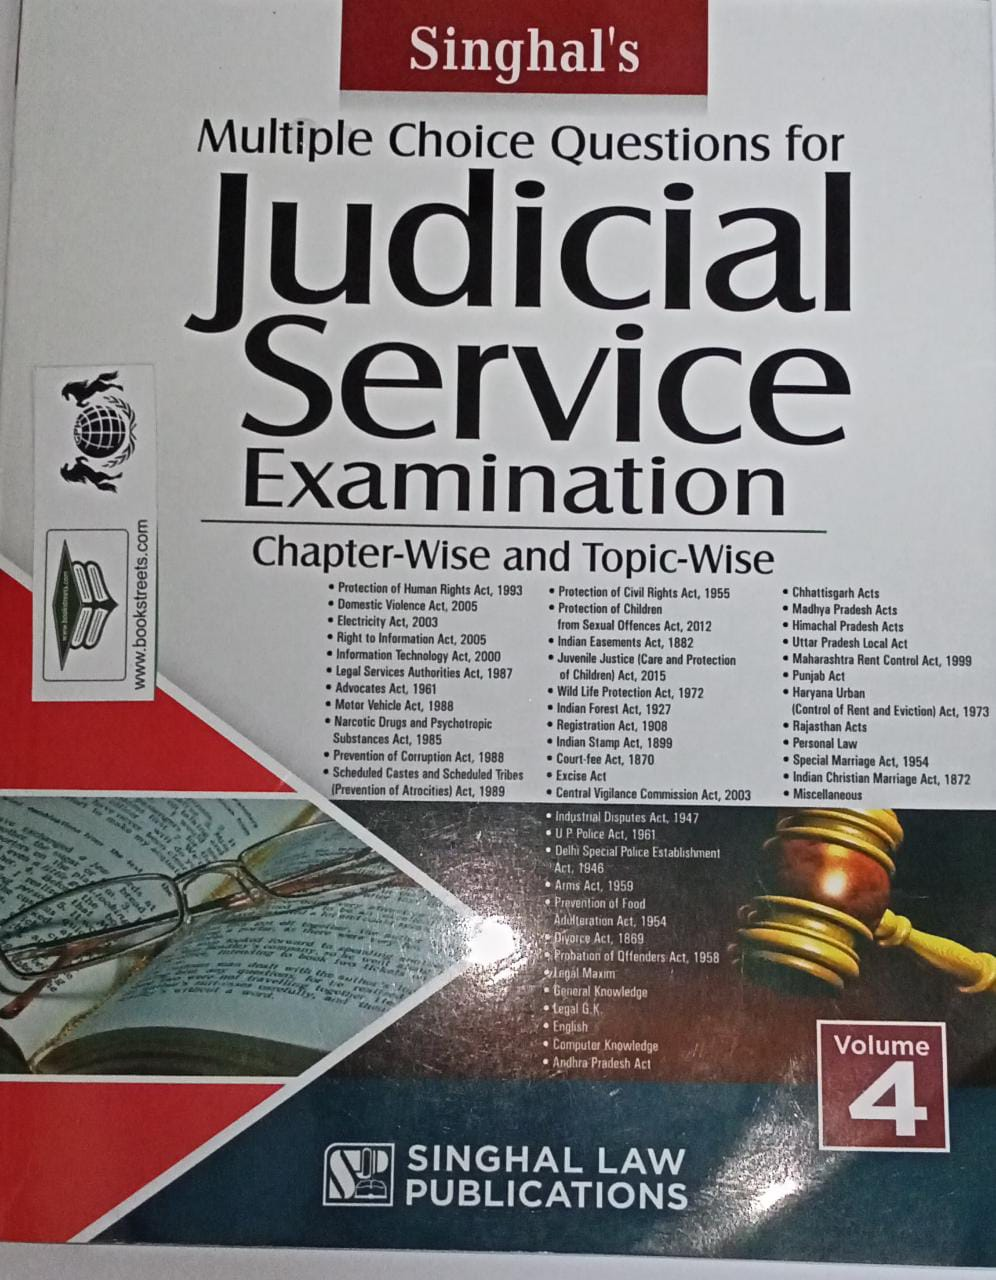 Singhal's Multiple Choice Question for Judicial Service Examination Chapter-wise and Topic wise Volume-4 by Singhal Law Publications